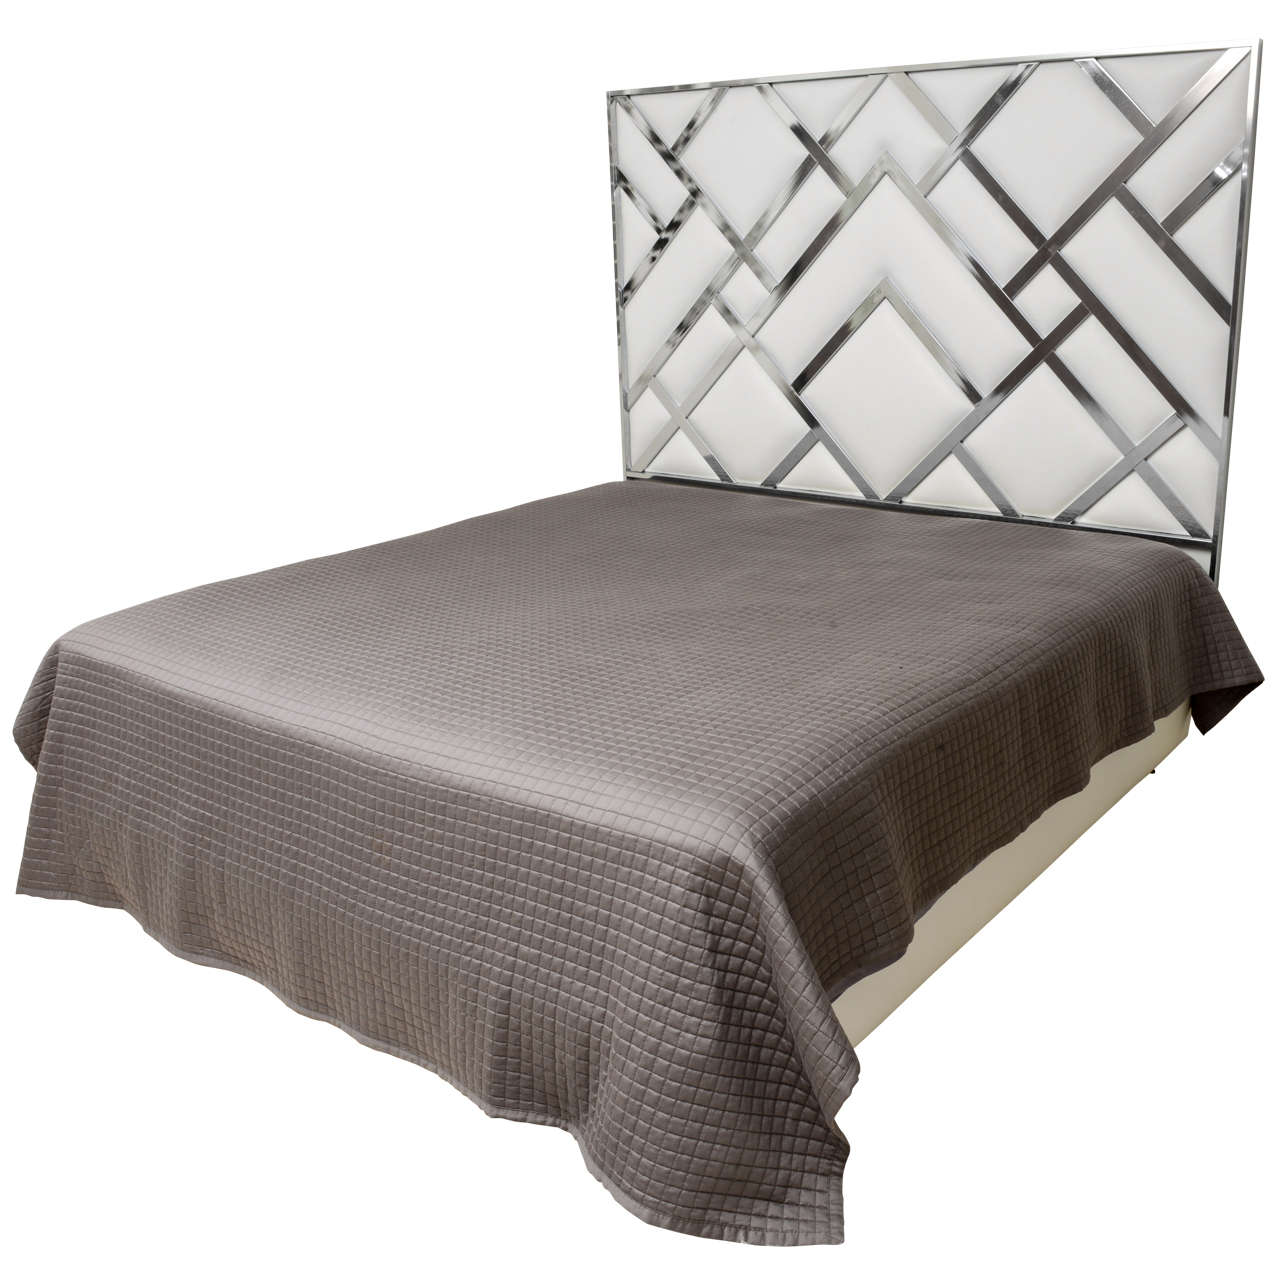 King Size D.I.A Headboard in Chrome and Faux Leather 1